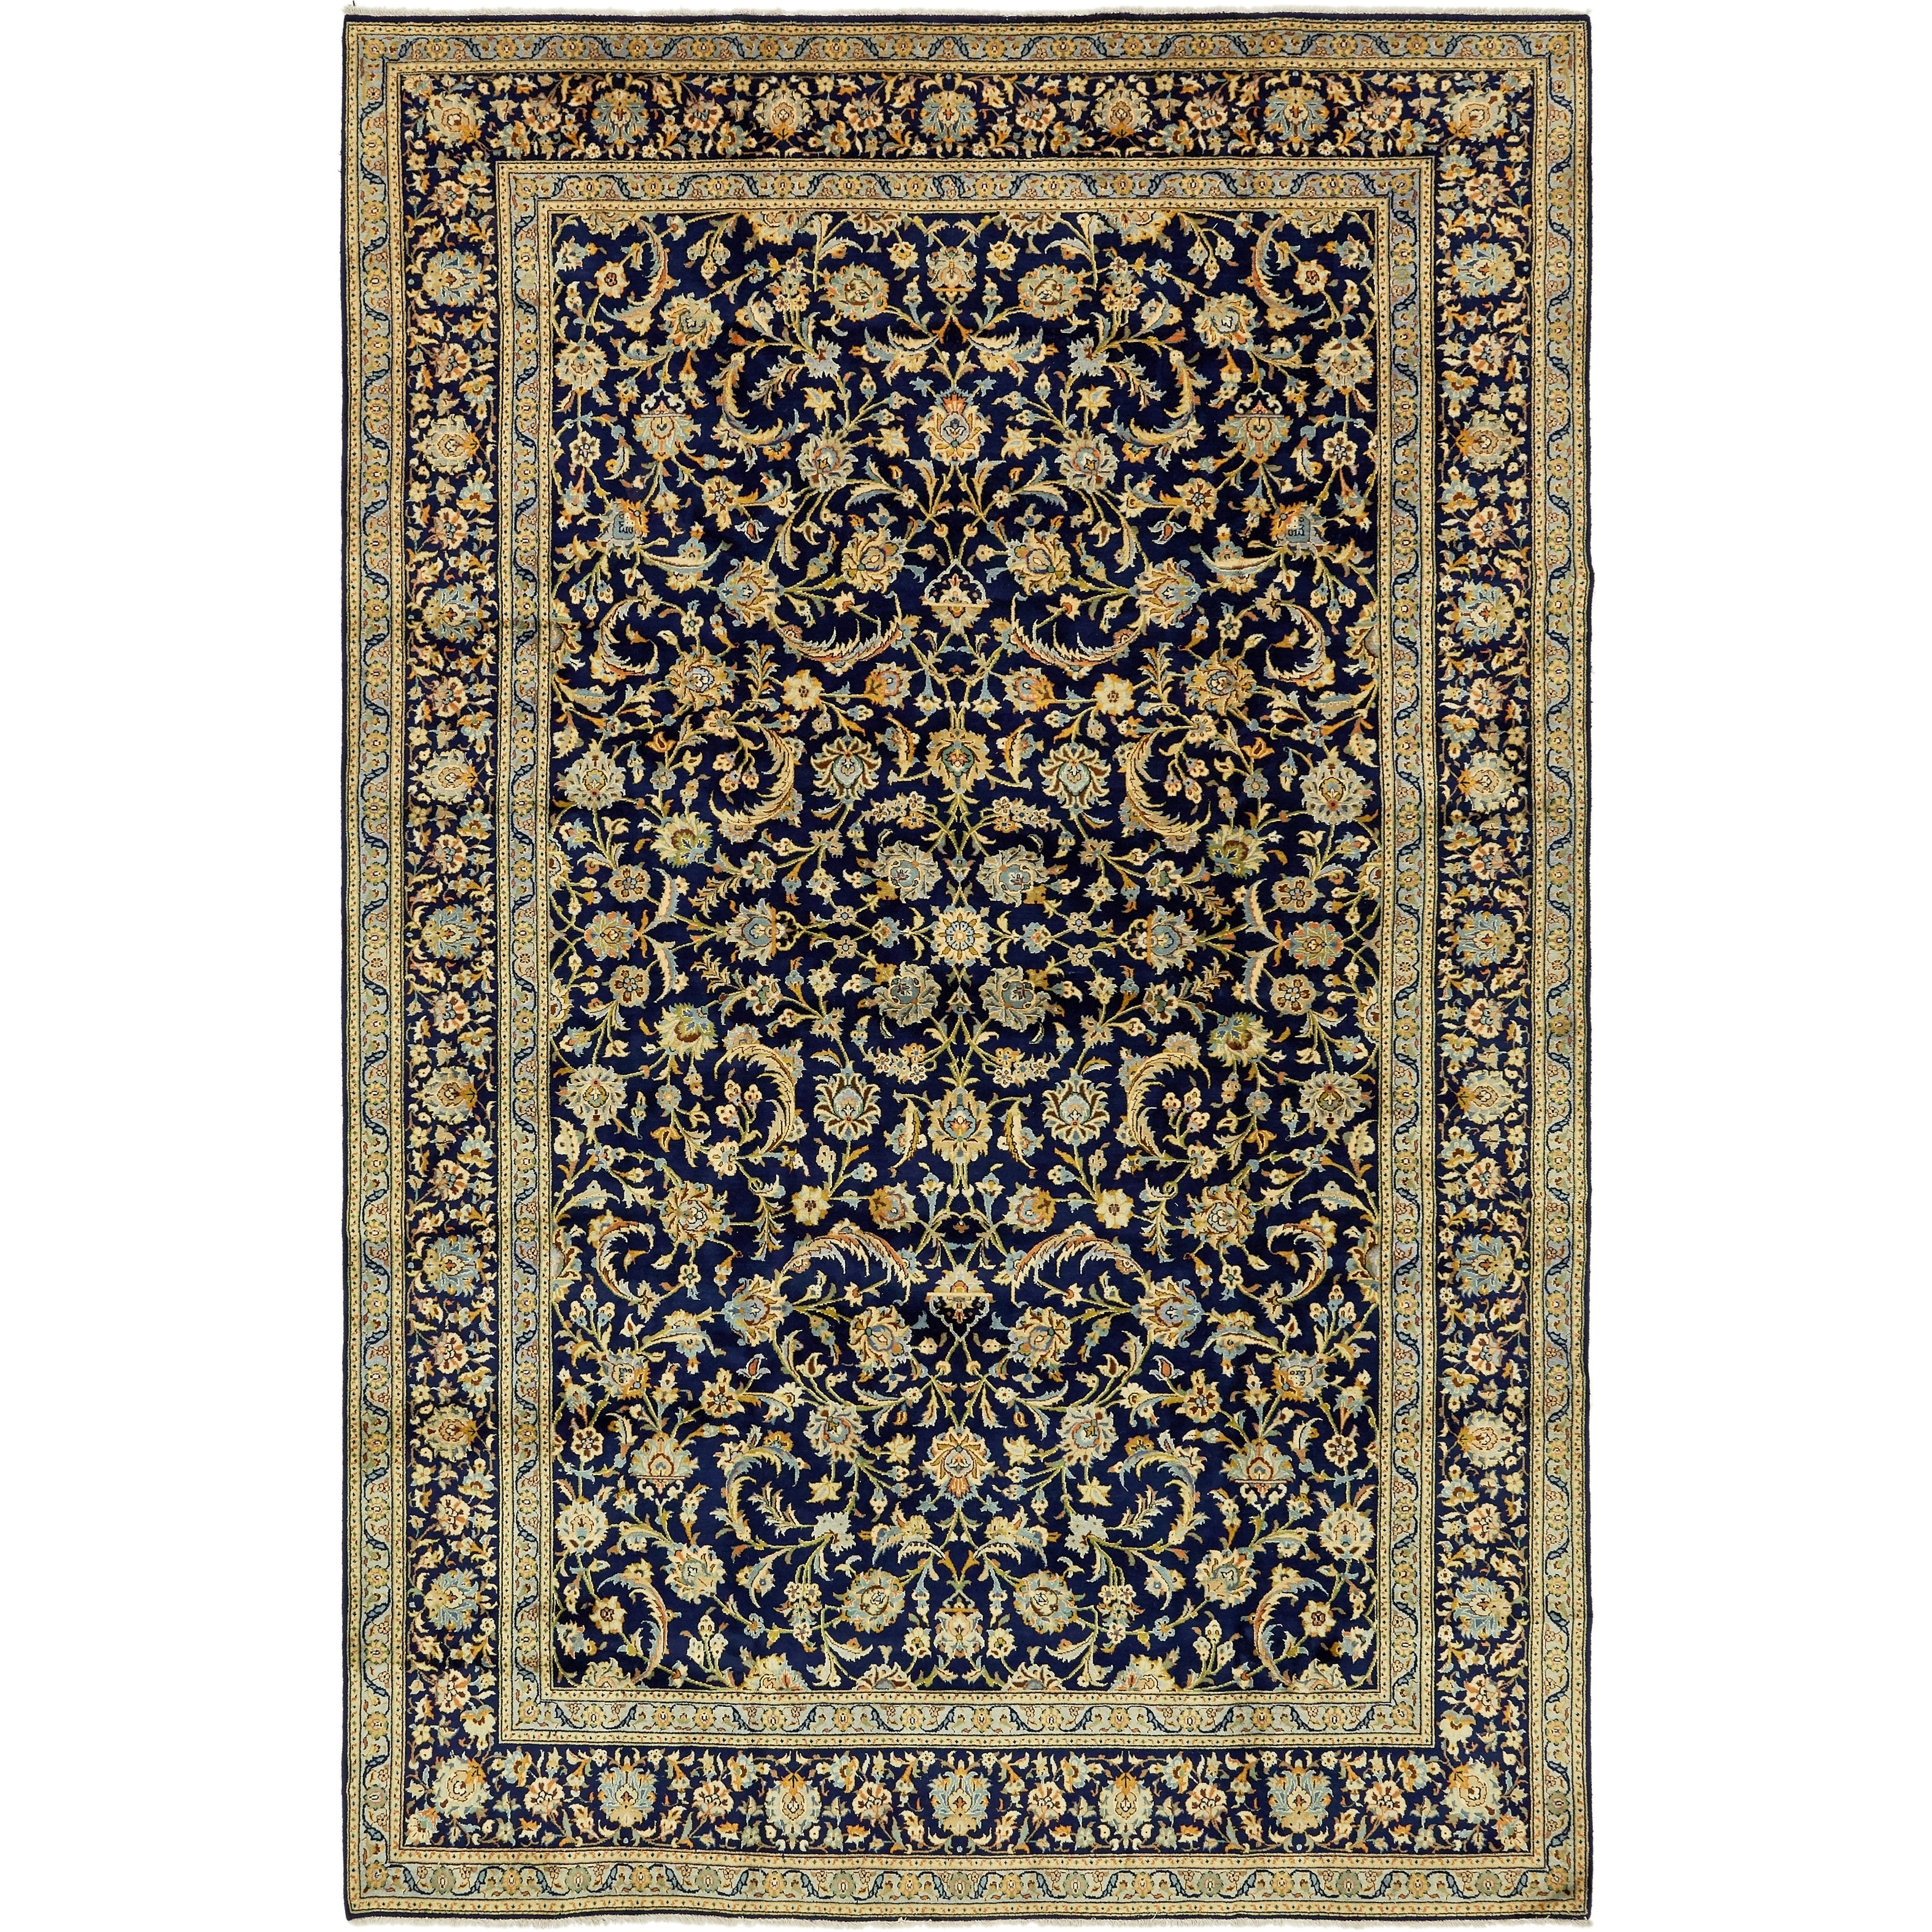 Hand Knotted Kashan Semi Antique Wool Area Rug - 8 6 x 13 5 (Navy blue - 8 6 x 13 5)